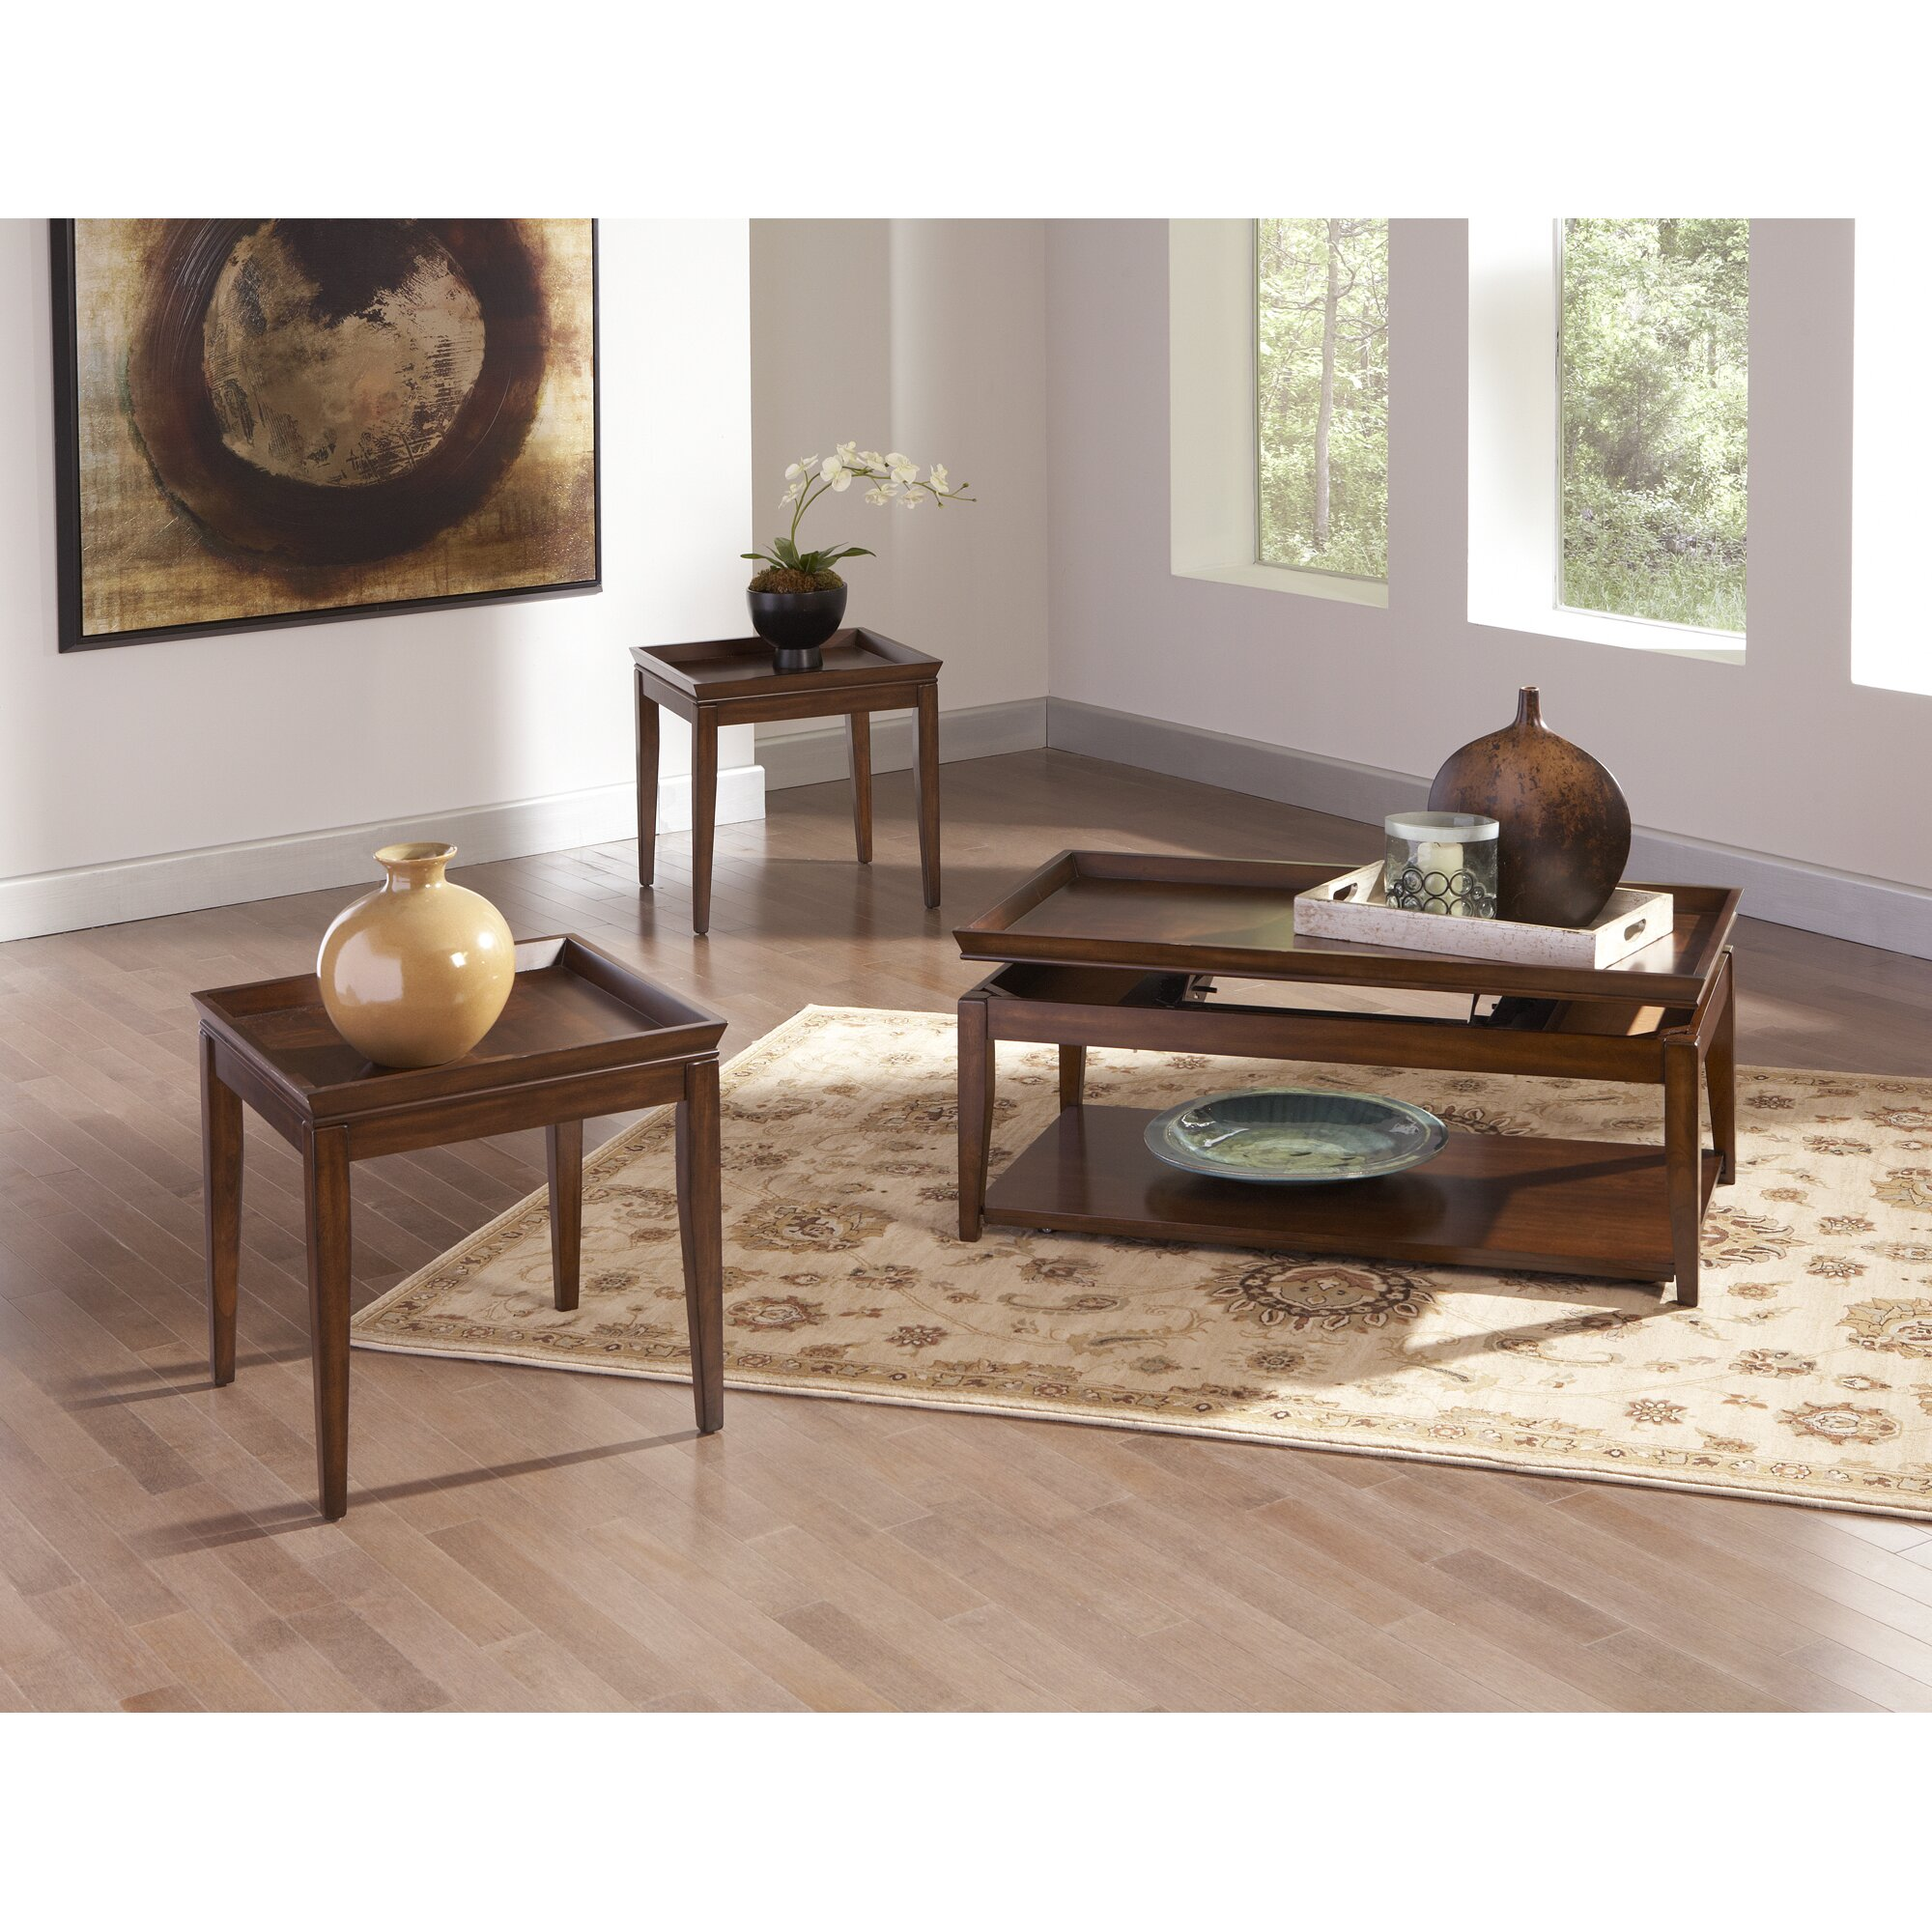 Steve Silver Furniture Clemson Coffee Table With Lift Top Reviews Wayfair